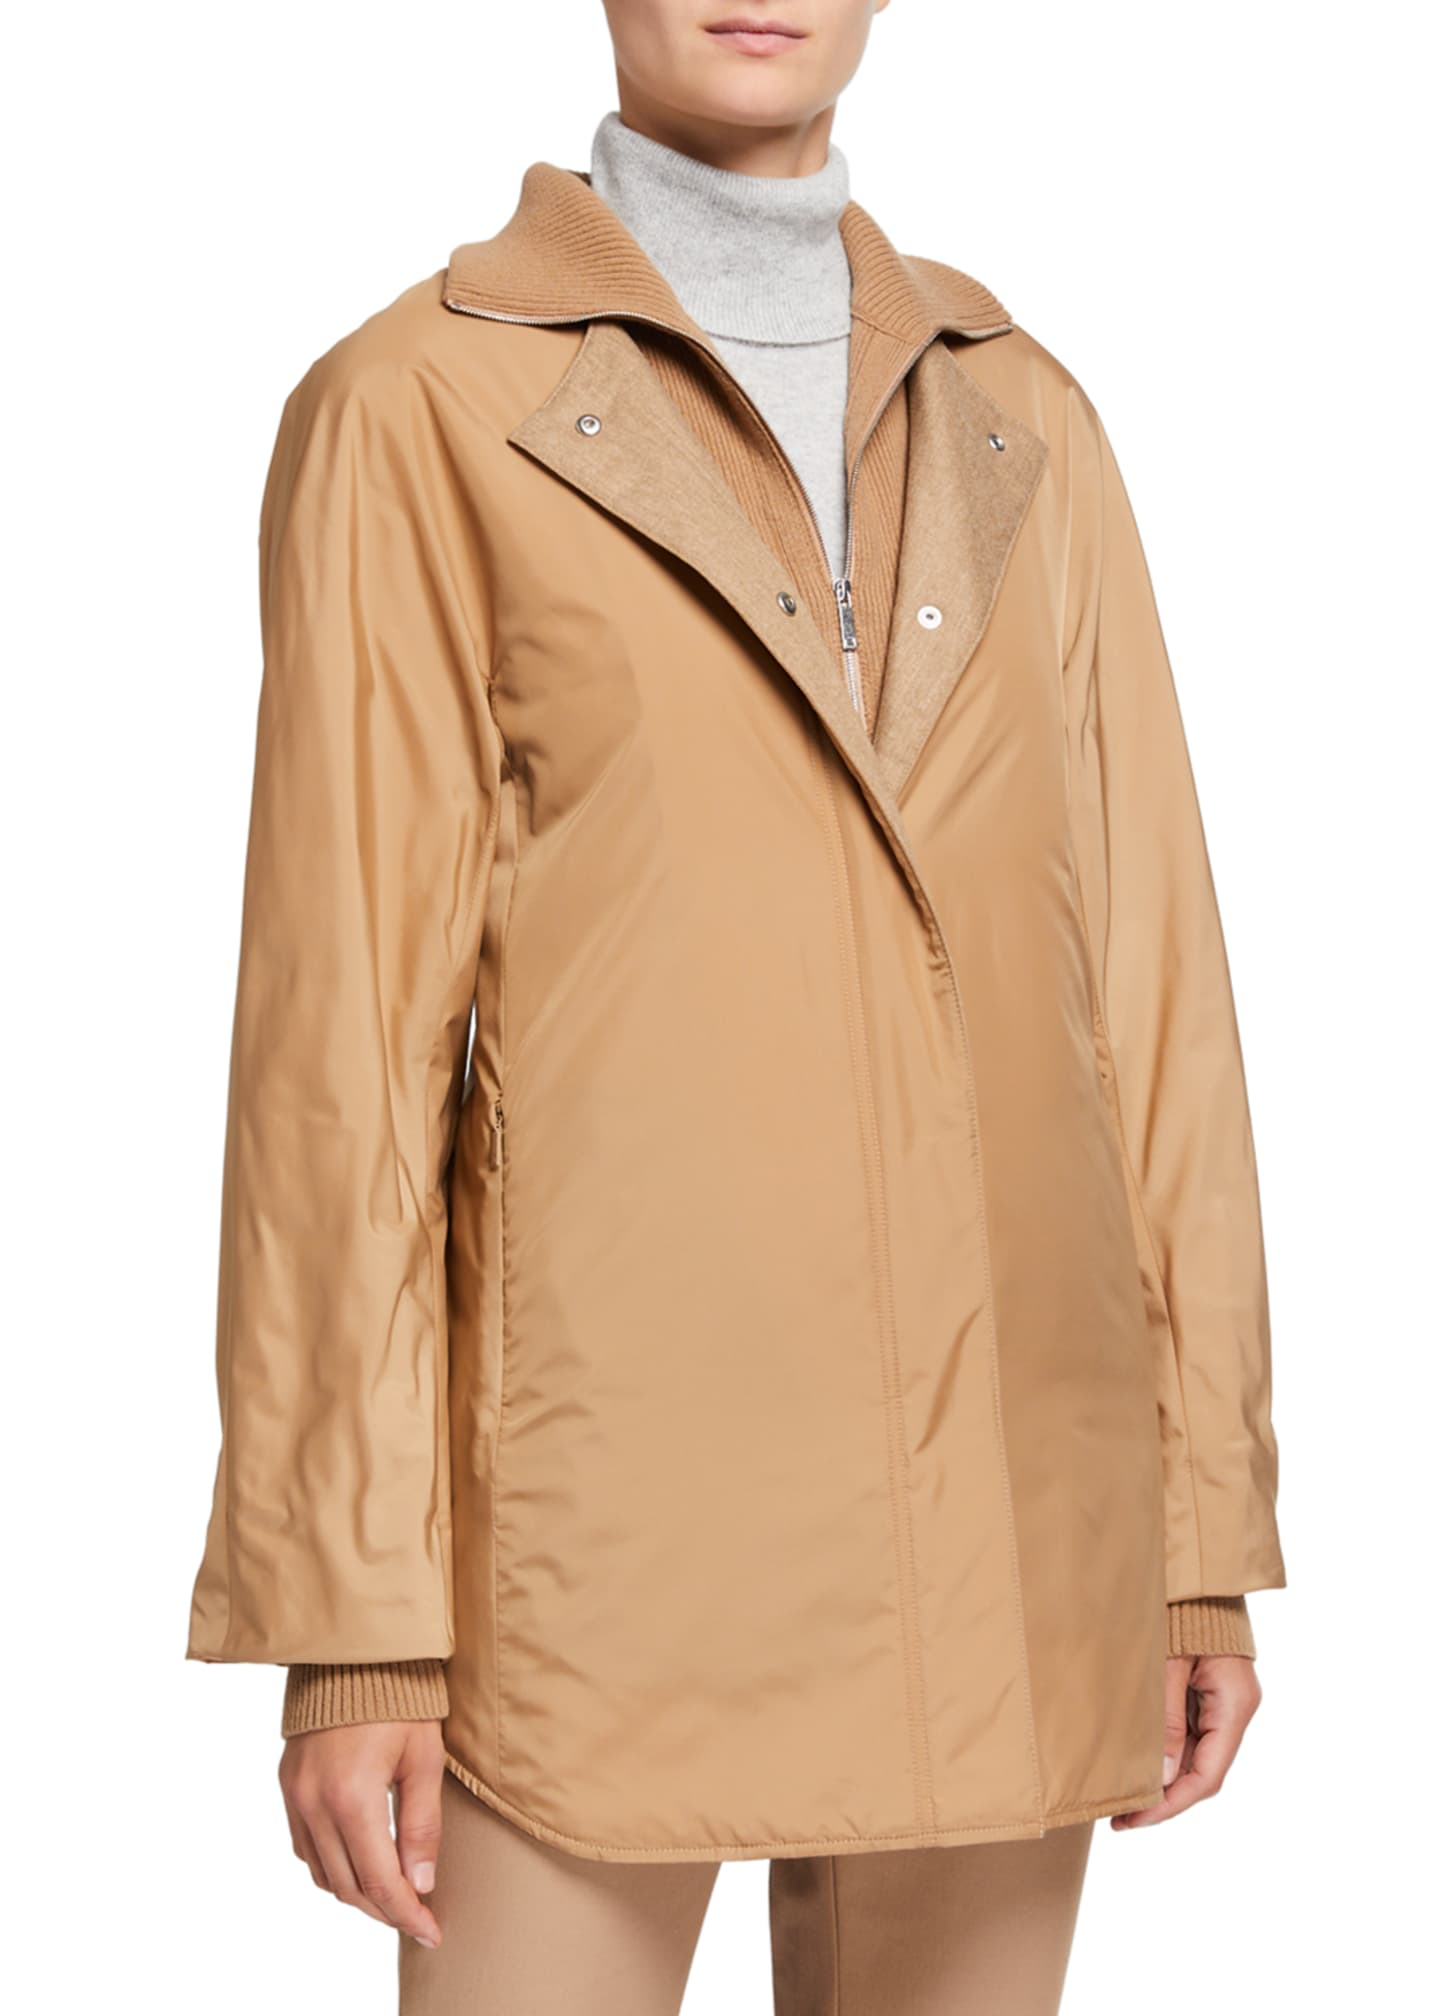 Lafayette 148 New York Mackay Alpine Outerwear Coat